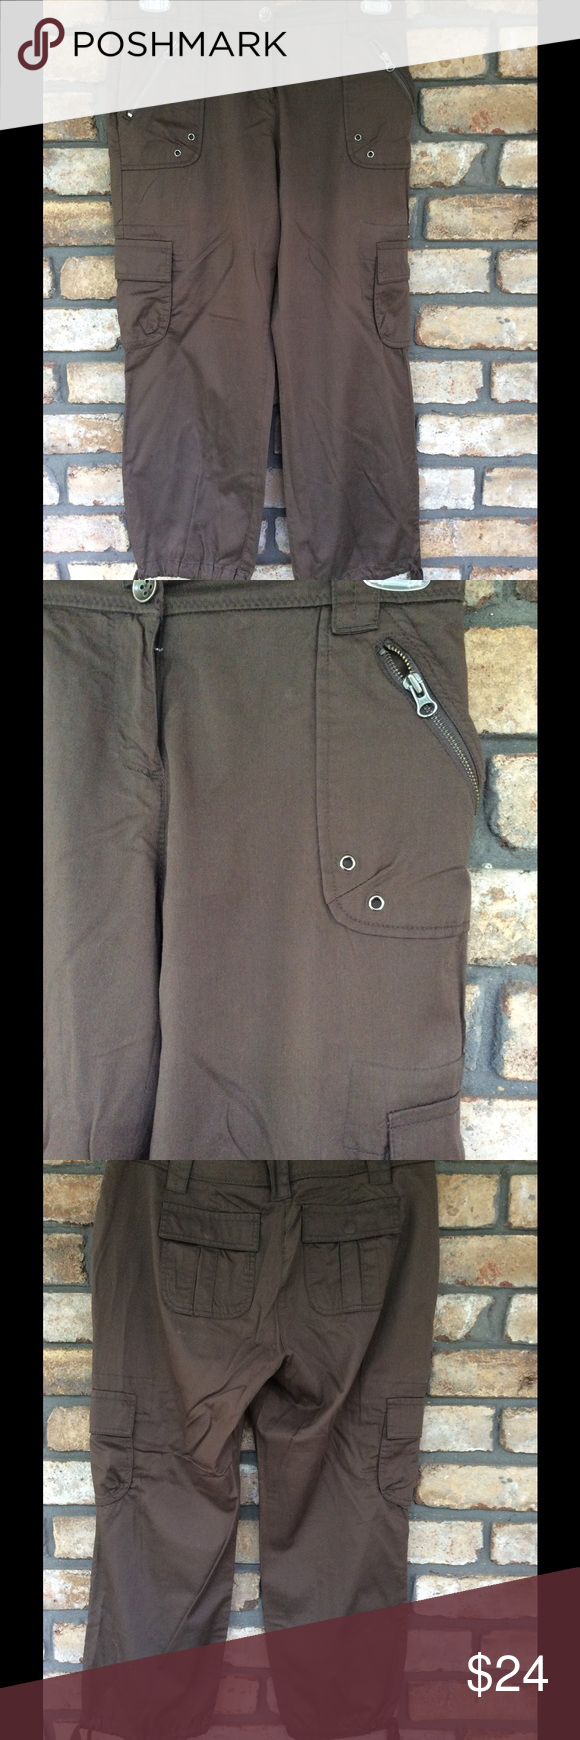 NY&Co Cargo Pants - NEW LISTING These are like new, I only wore them maybe twice.. They are 100% cotton, they are Inbetween Capri and ankle, depending on ur height, I'm 5'3 so they were more of an ankle pant, but would be more Capri if ur taller. They  have the cargo pockets, zippered pockets in the front, zipper and button closure and drawstring legs. They are comfy and in excellent condition New York & Company Pants Capris